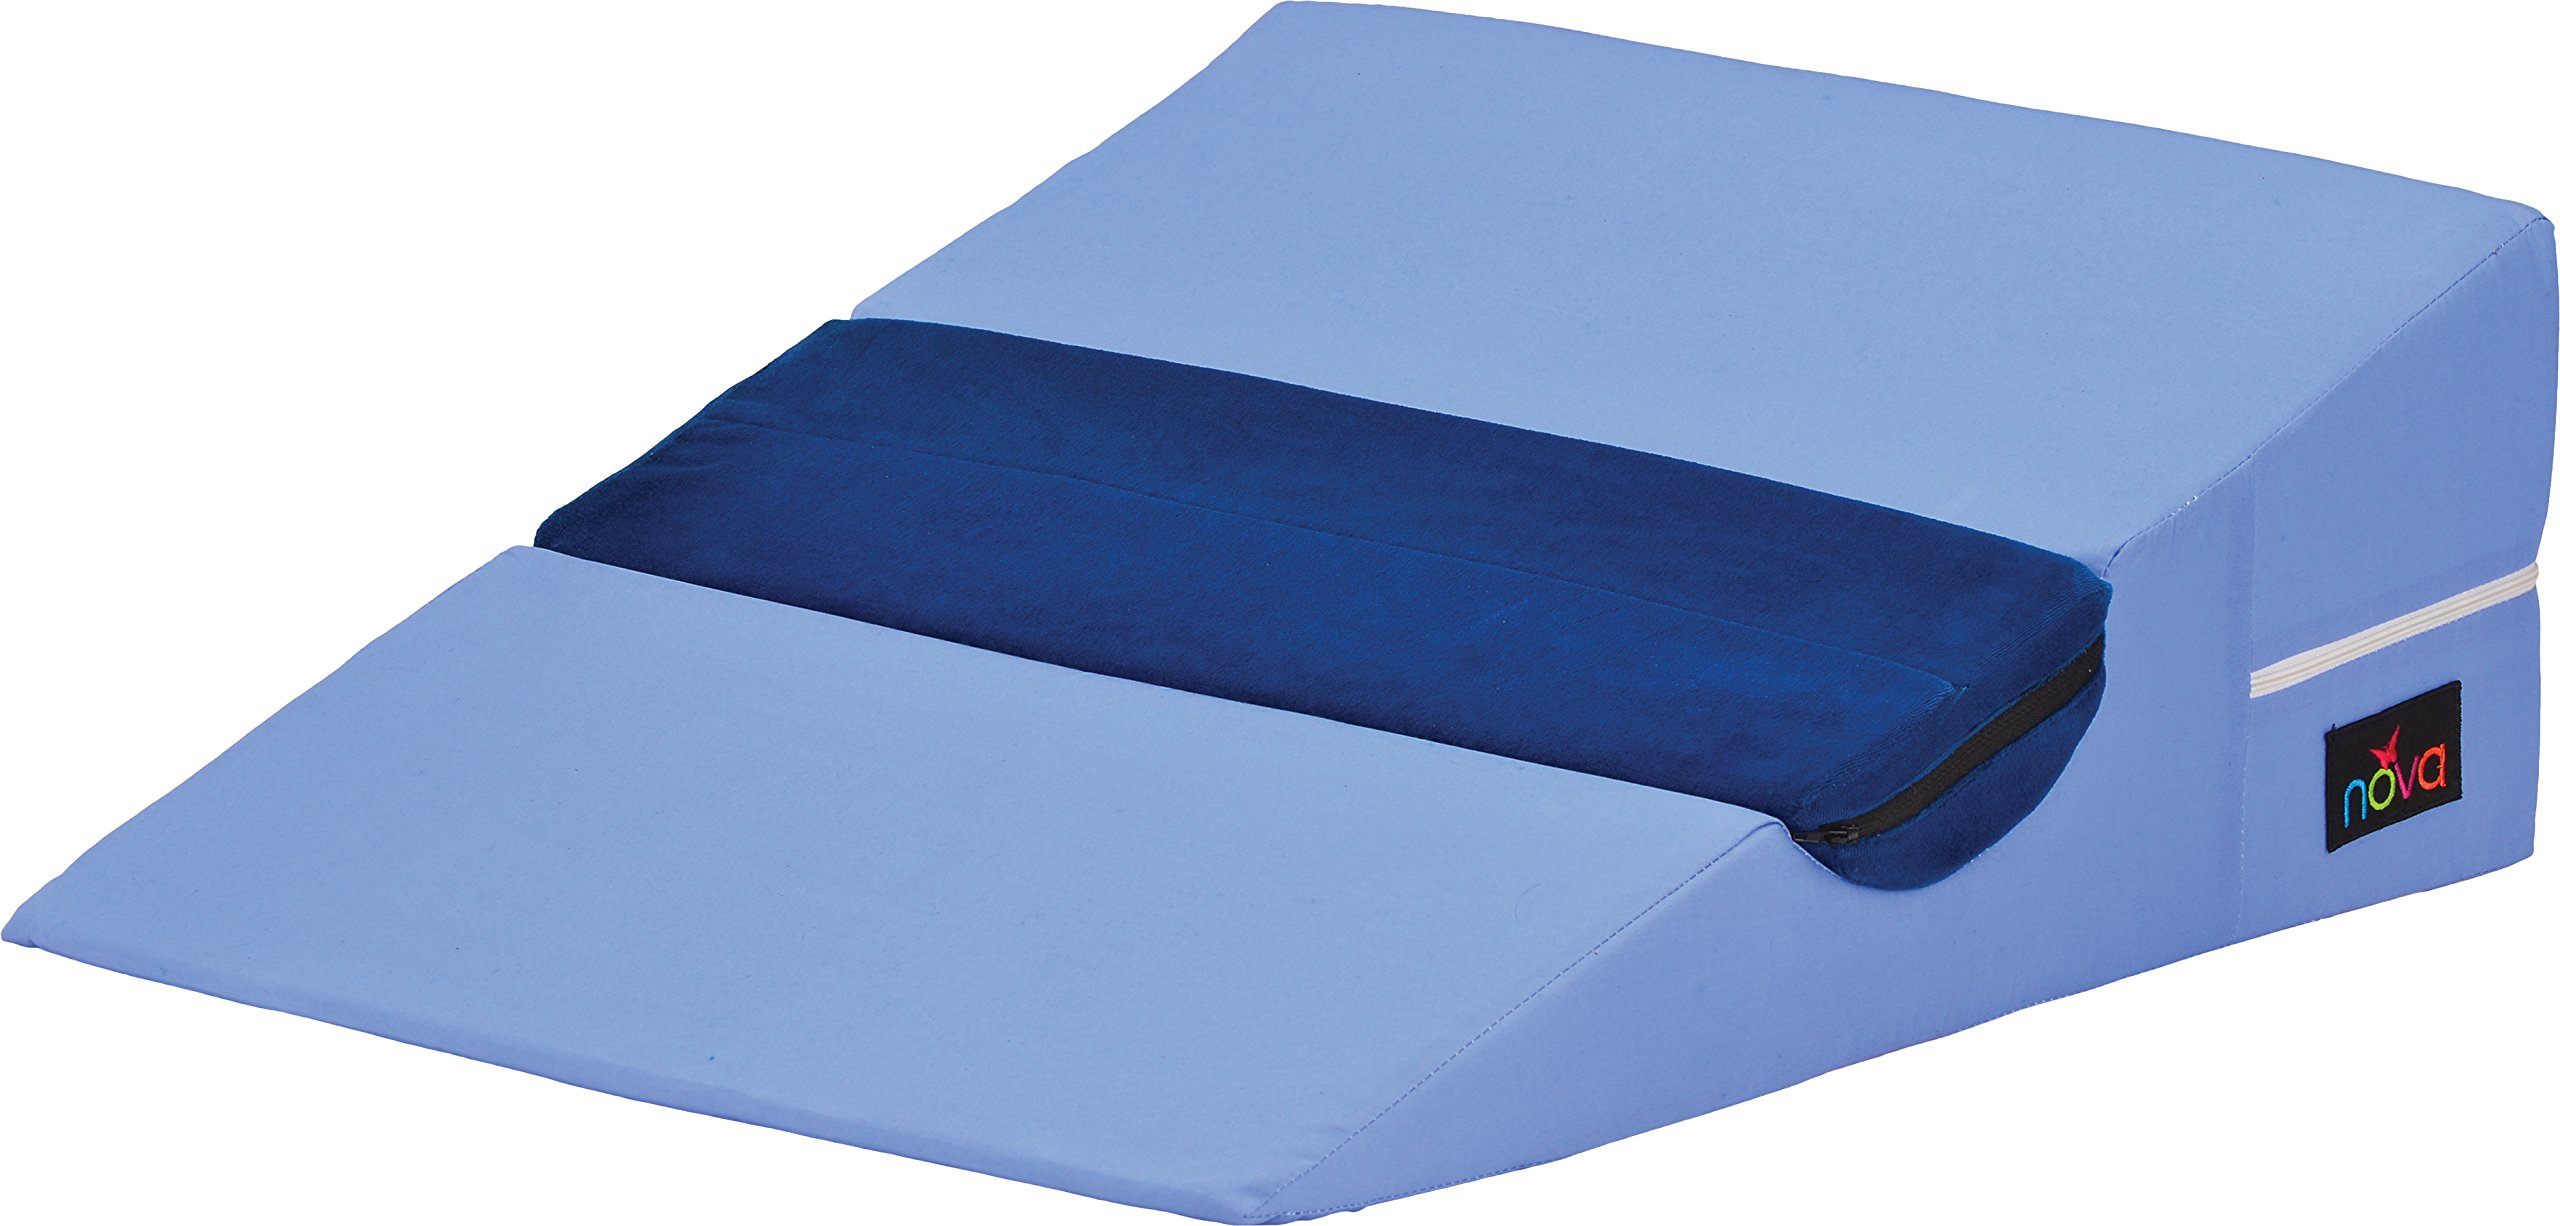 NOVA Medical Products Bed Wedge with Half Roll Pillow, Blue, 5 Pound